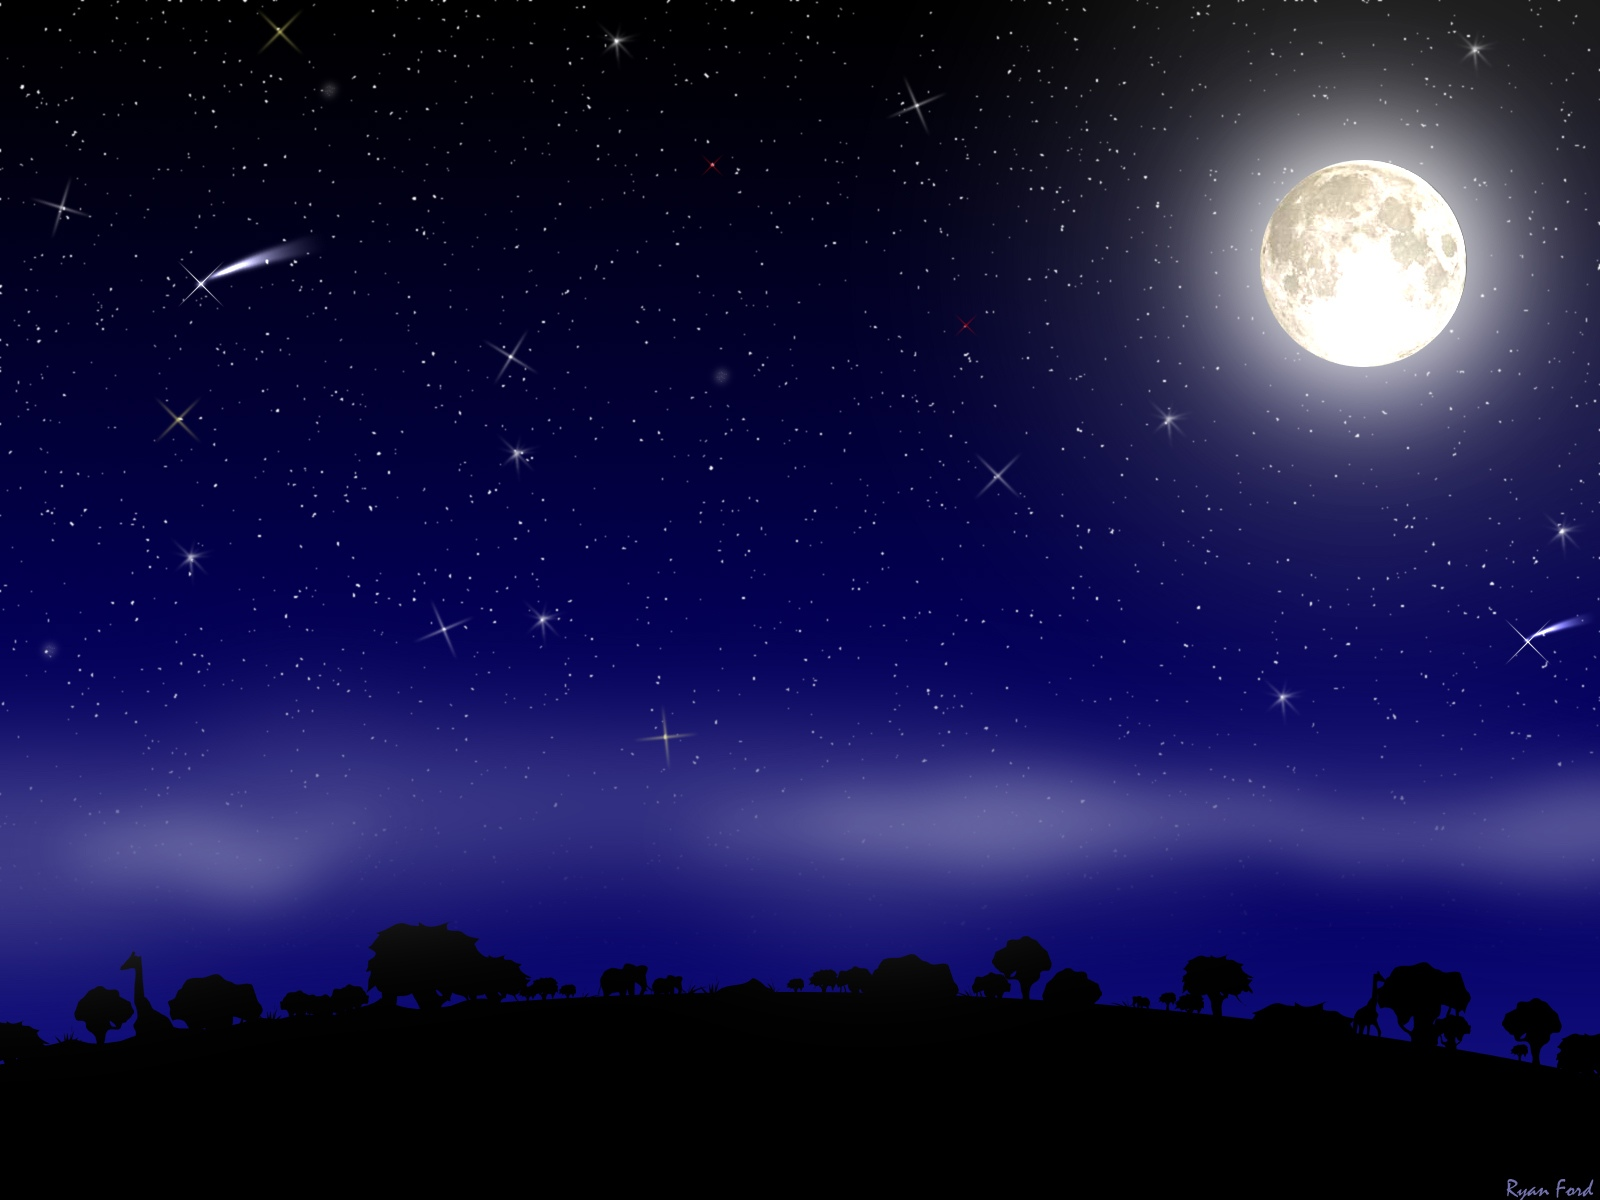 Night and the moon - background for your desktop